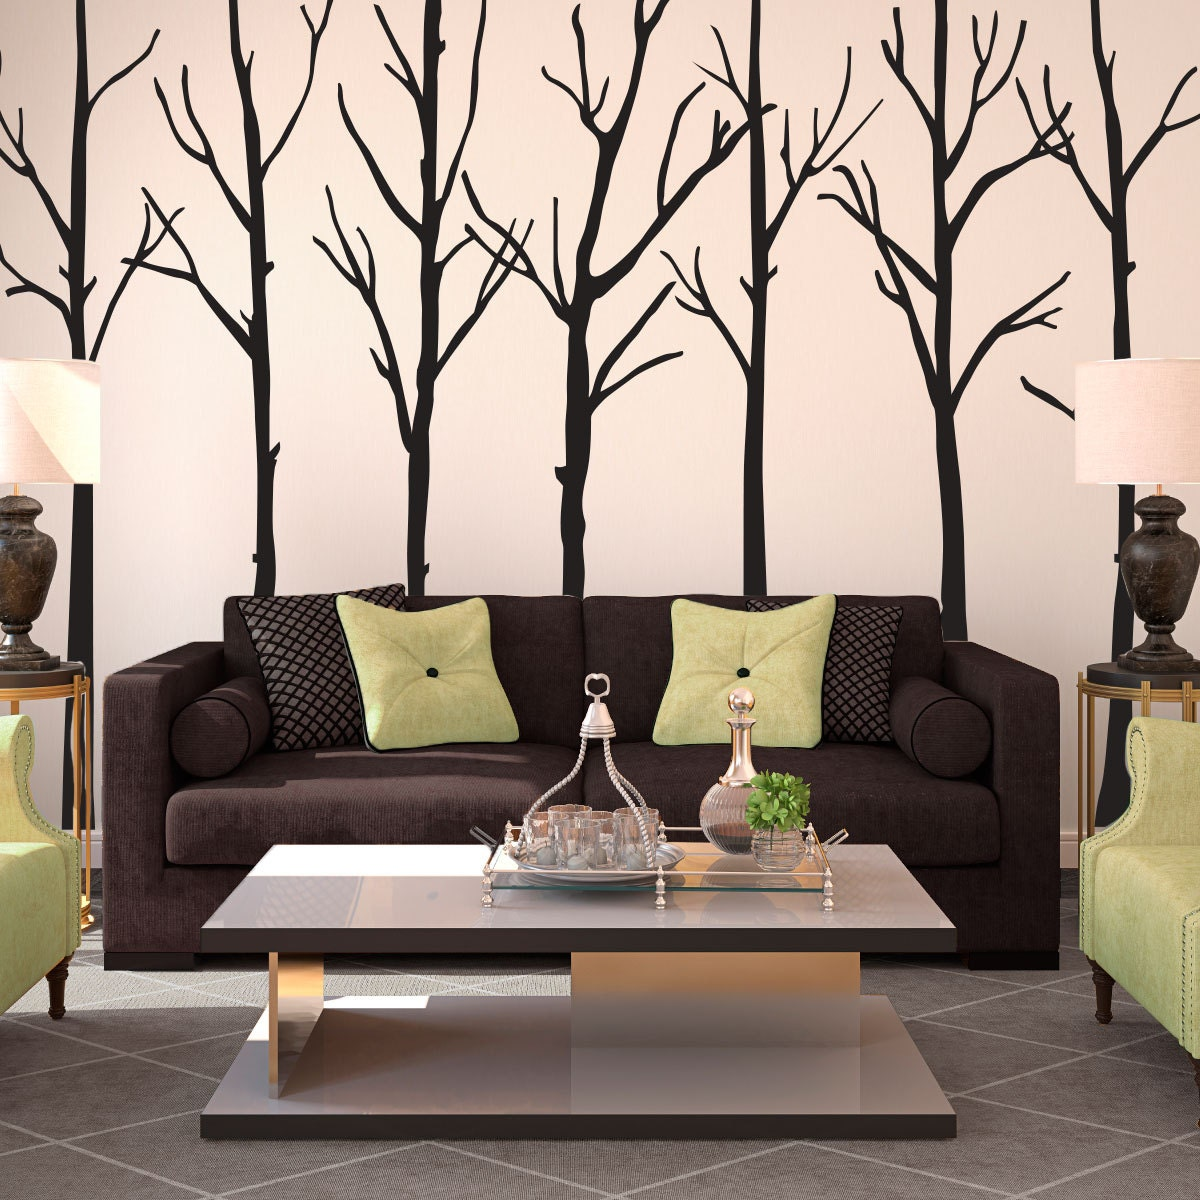 Winter Leafless Trees Silhouettes Forest Wall Decal By